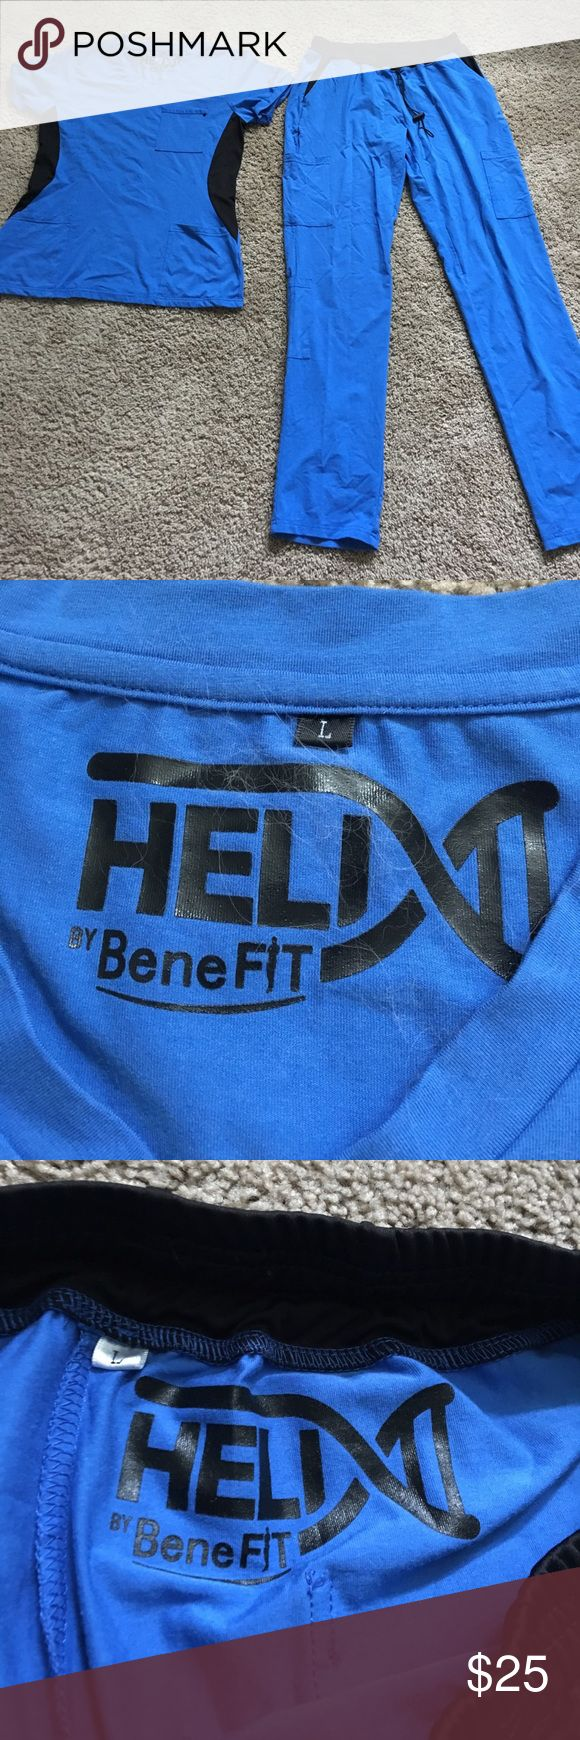 Helix size large 2 pc scrub set Perfect condition Helix benefit sz lge 2 pic royal blue scrub set see our other scrubs would love to bundle and save you money helix benefit scrubs Pants